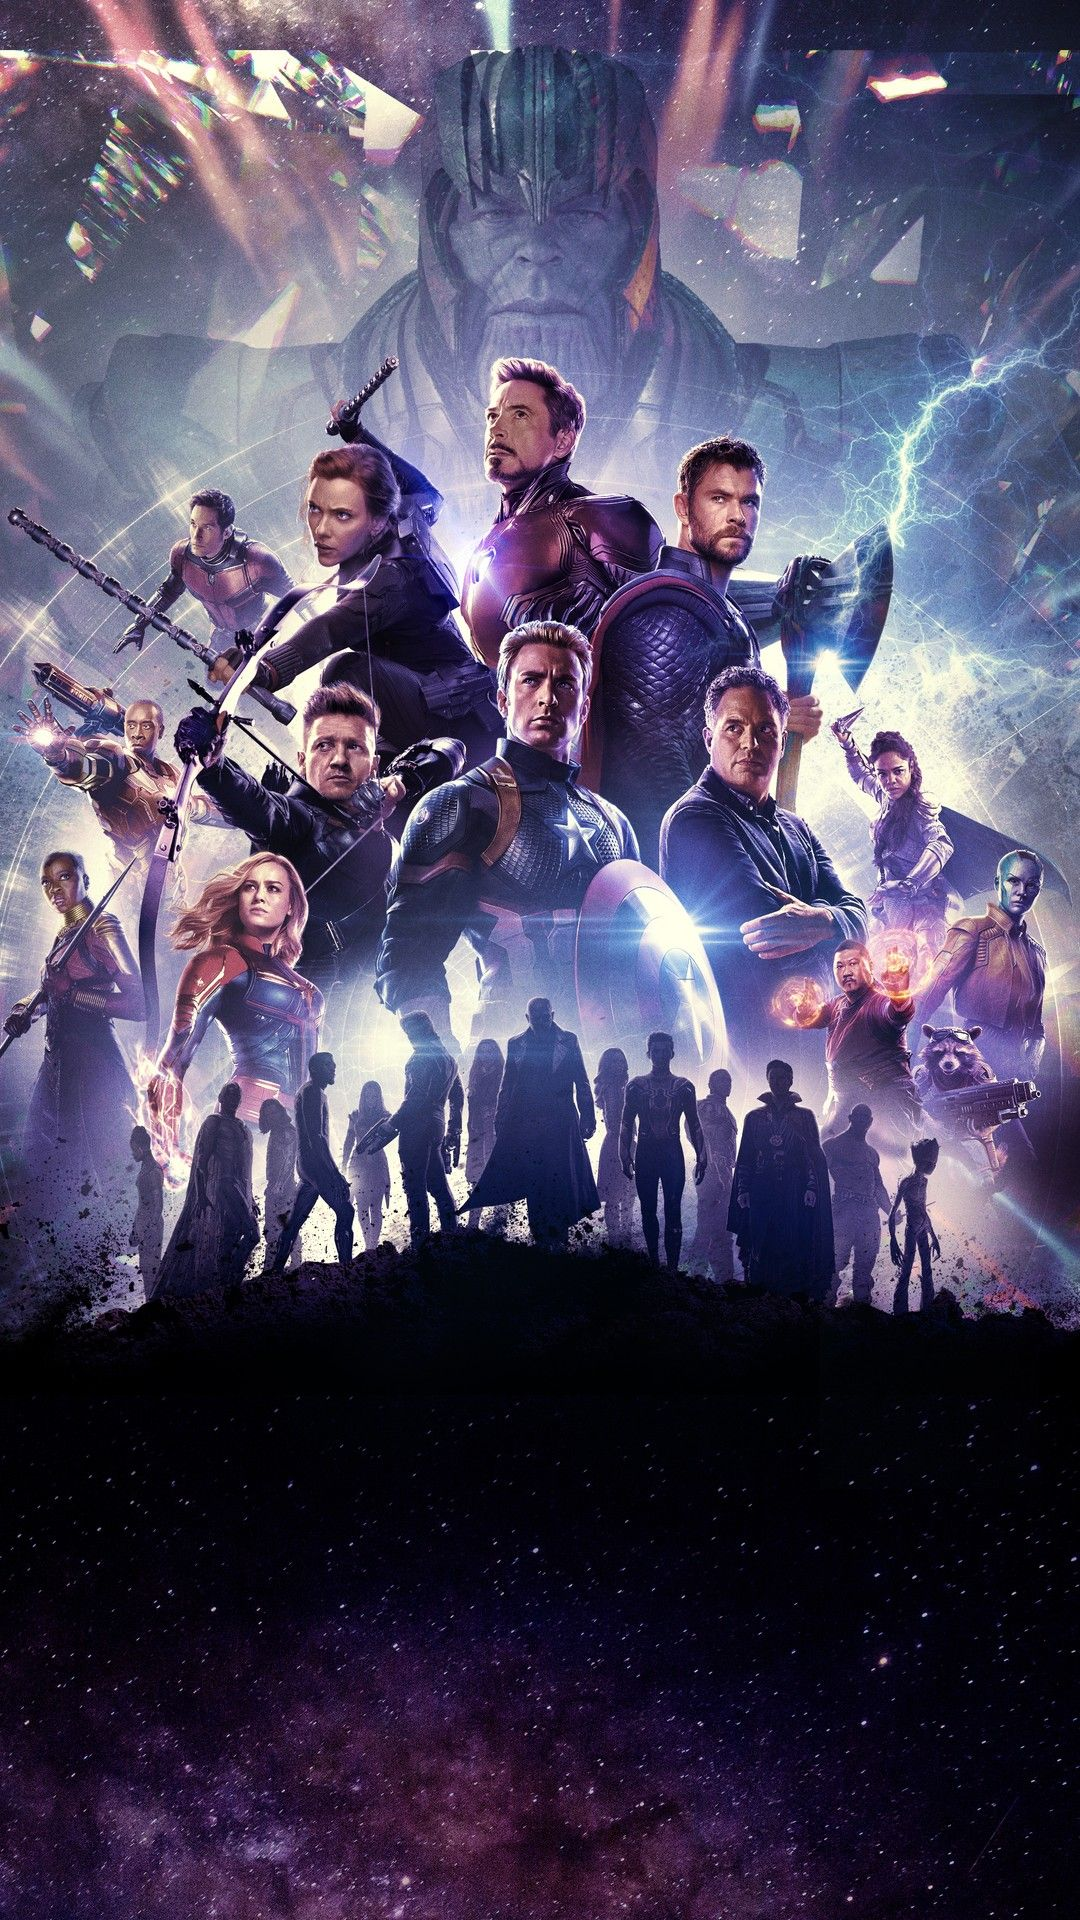 Avengers Endgame 2019 Android Wallpaper Best Movie Poster